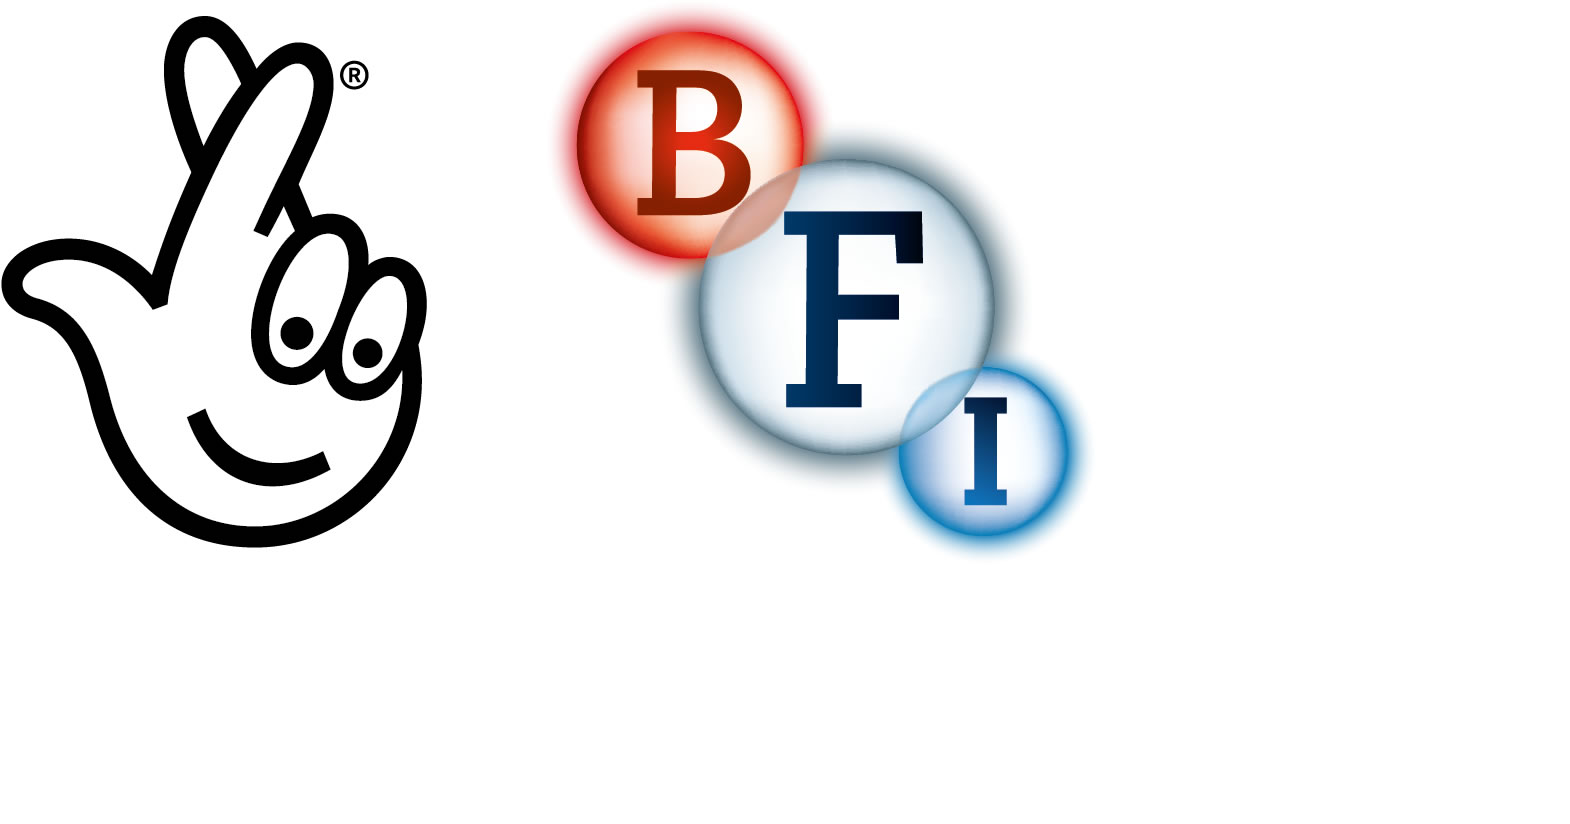 4_BFI LOTTERY FUNDED_FF_COL_LOGO_GLOW_NEG.fw (4)